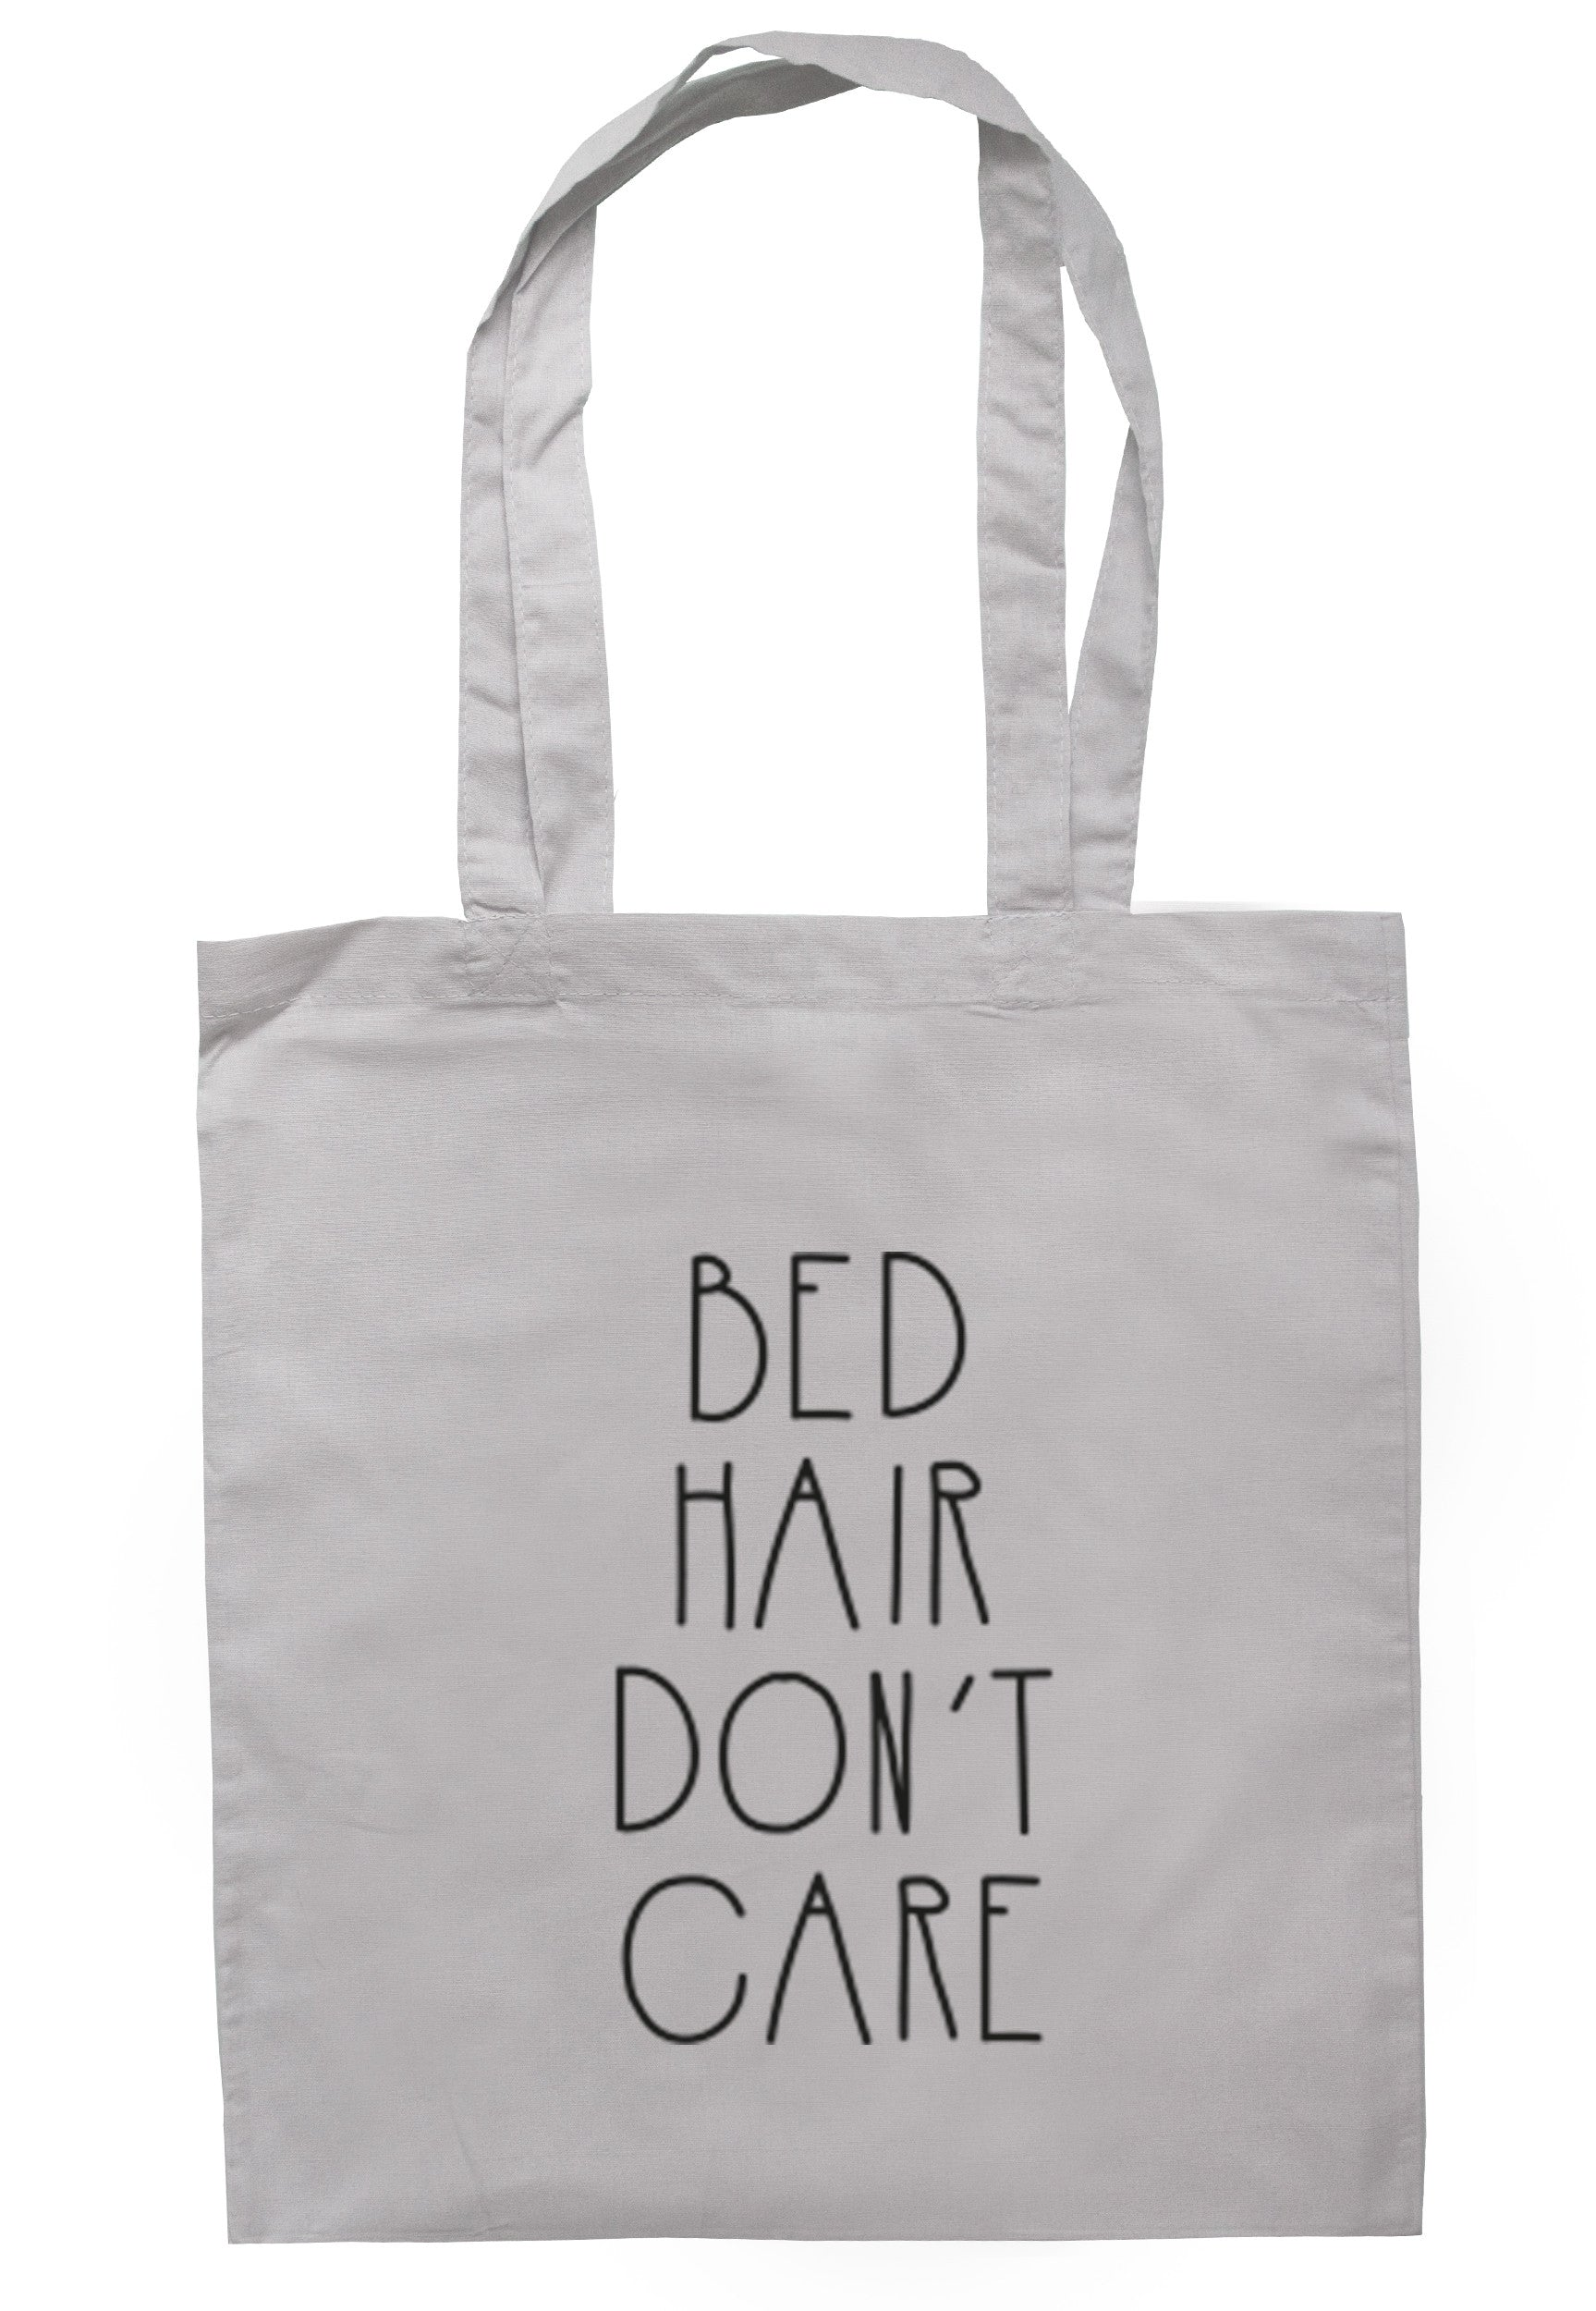 Bed Hair Don't Care Tote Bag TB0252 - Illustrated Identity Ltd.